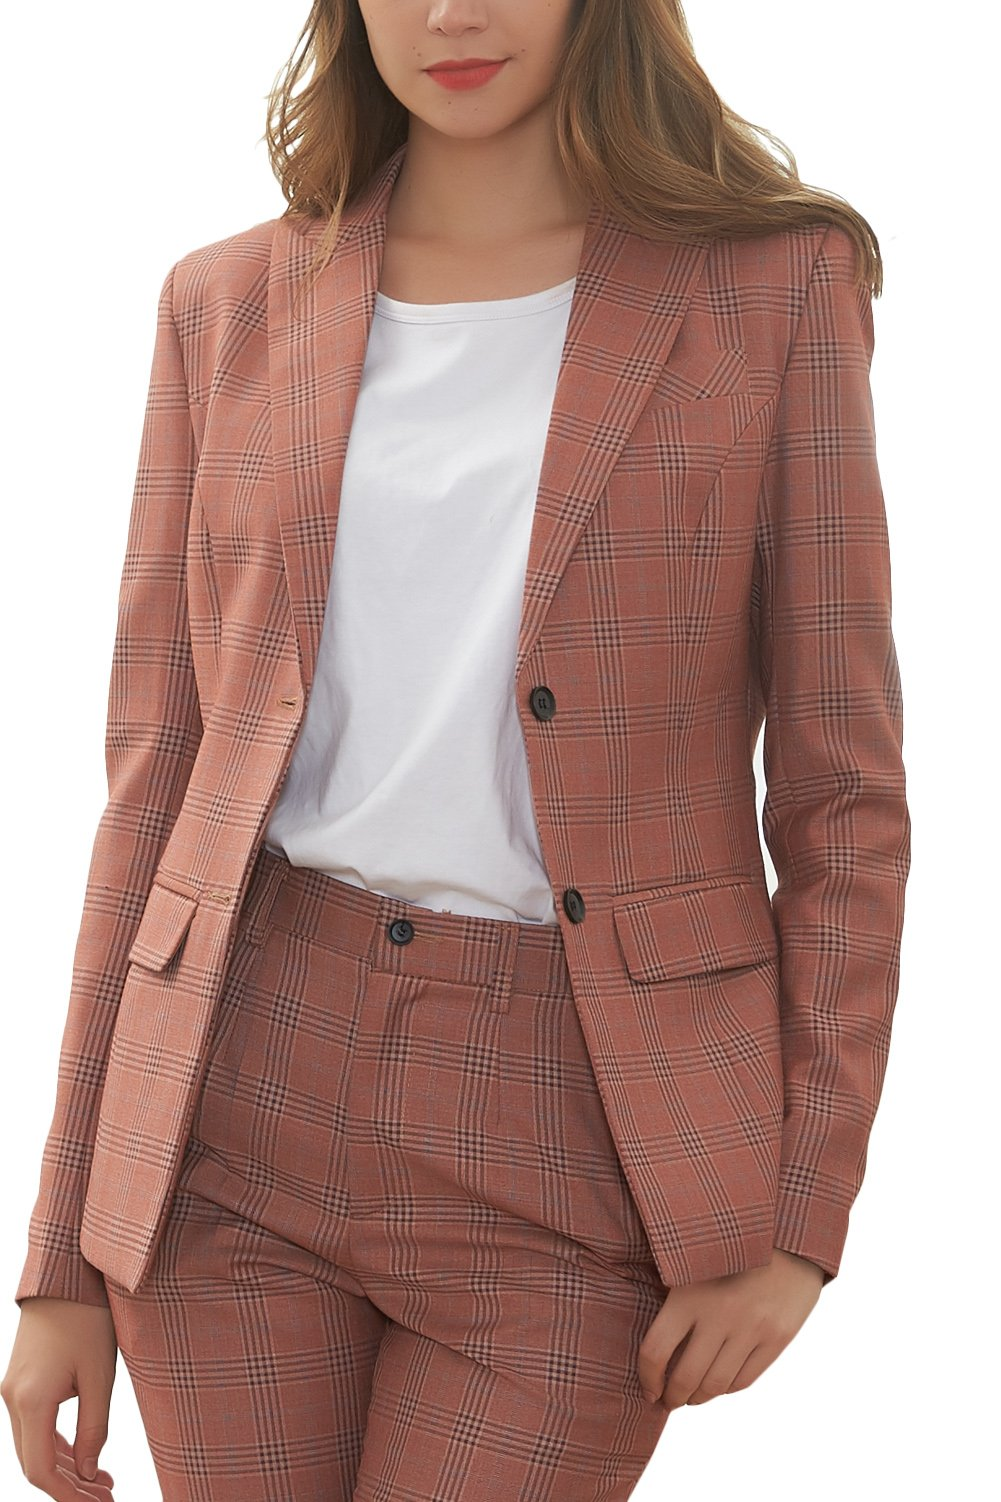 Hanayome Women's Suit Single Breasted Regular Fit Formal 2 PC Blazer Separate Pants MI1 (Cerise, 12)